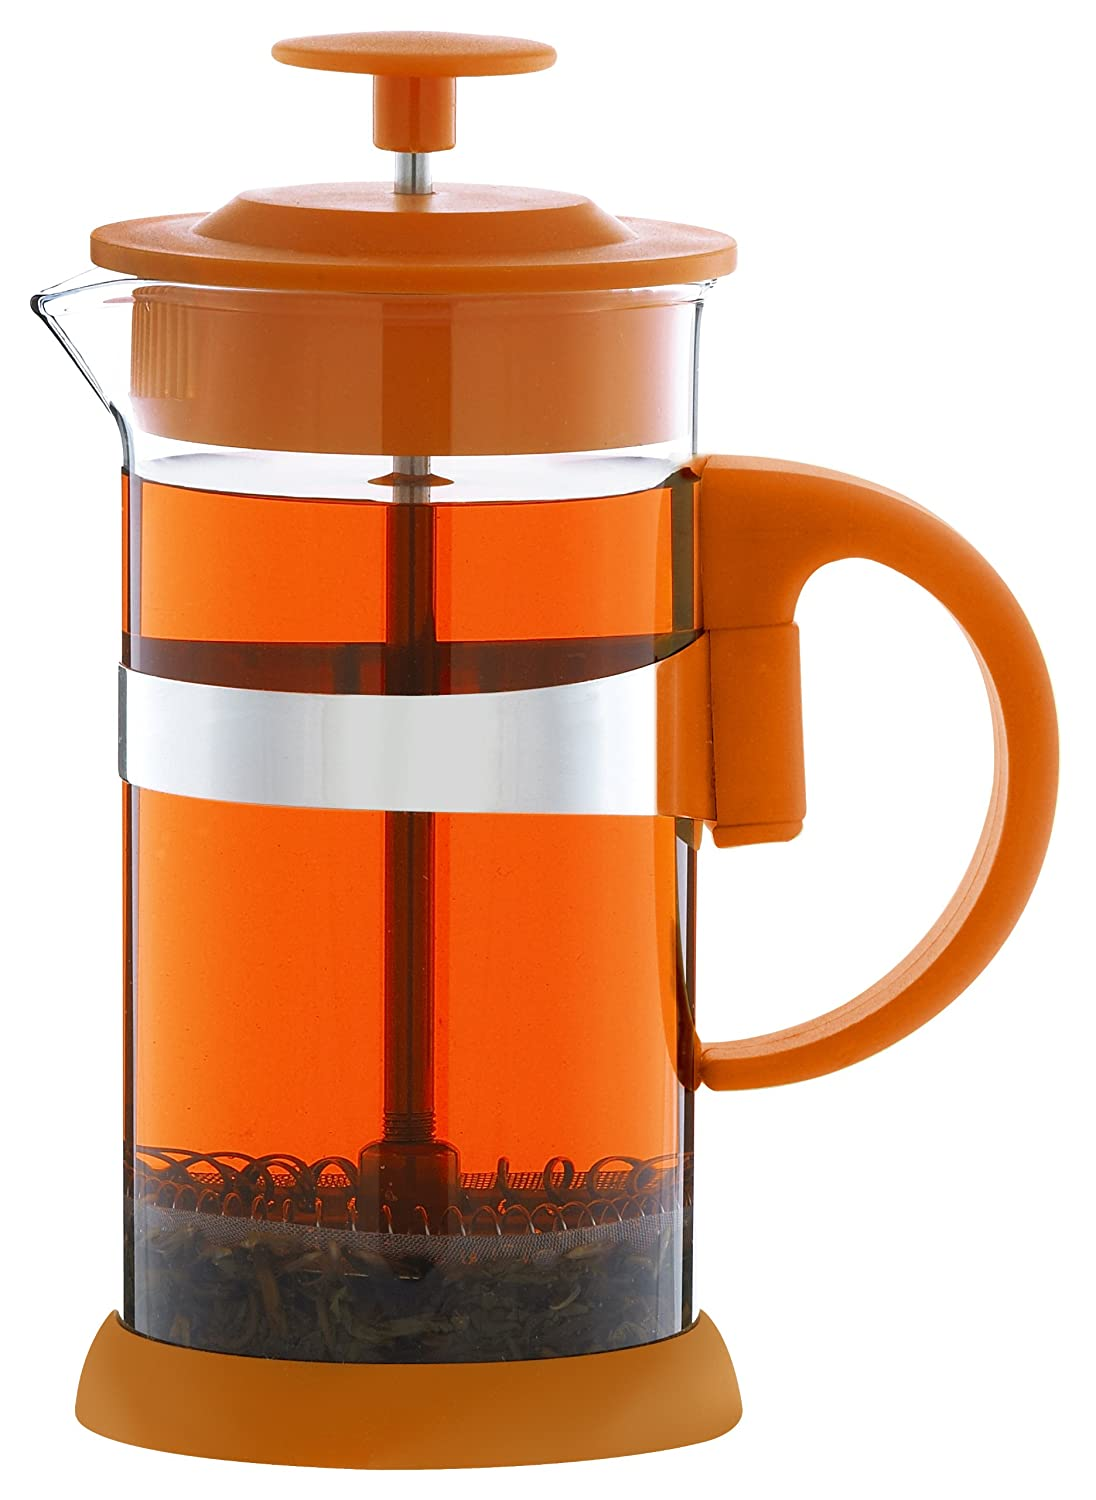 Bed bath beyond french press - Grosche Zurich French Press Coffee And Tea Maker